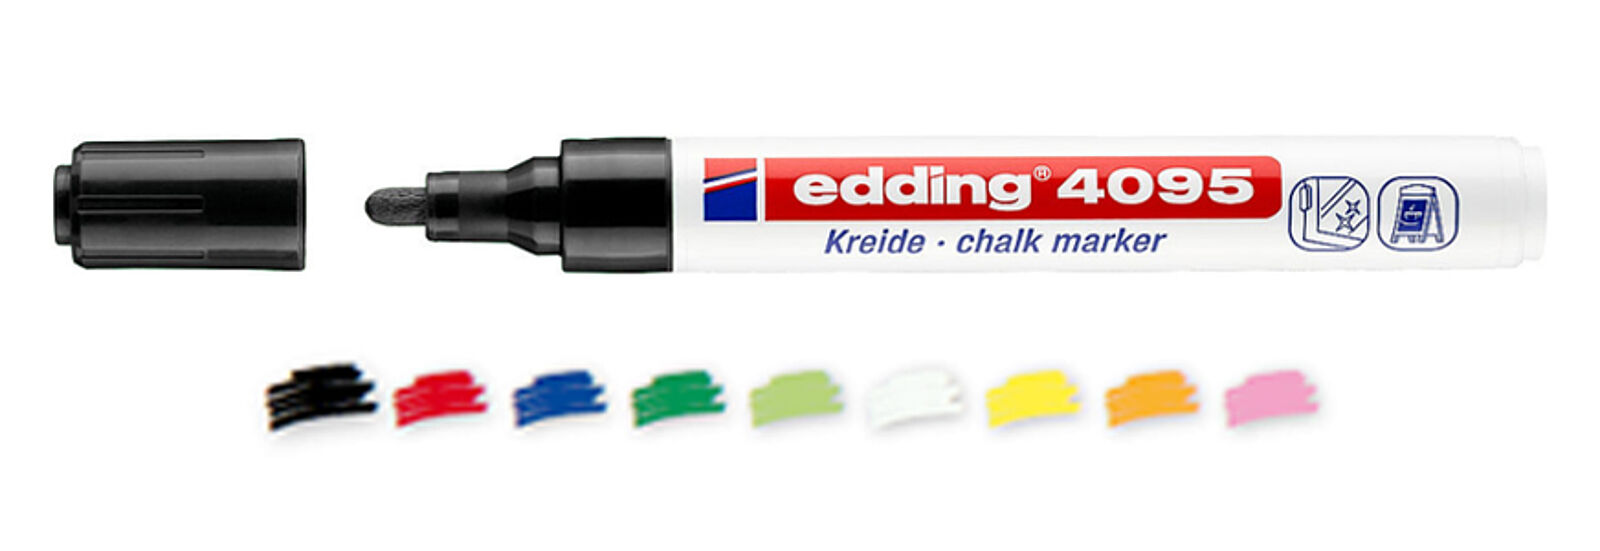 Product image of the chalk marker edding 4095